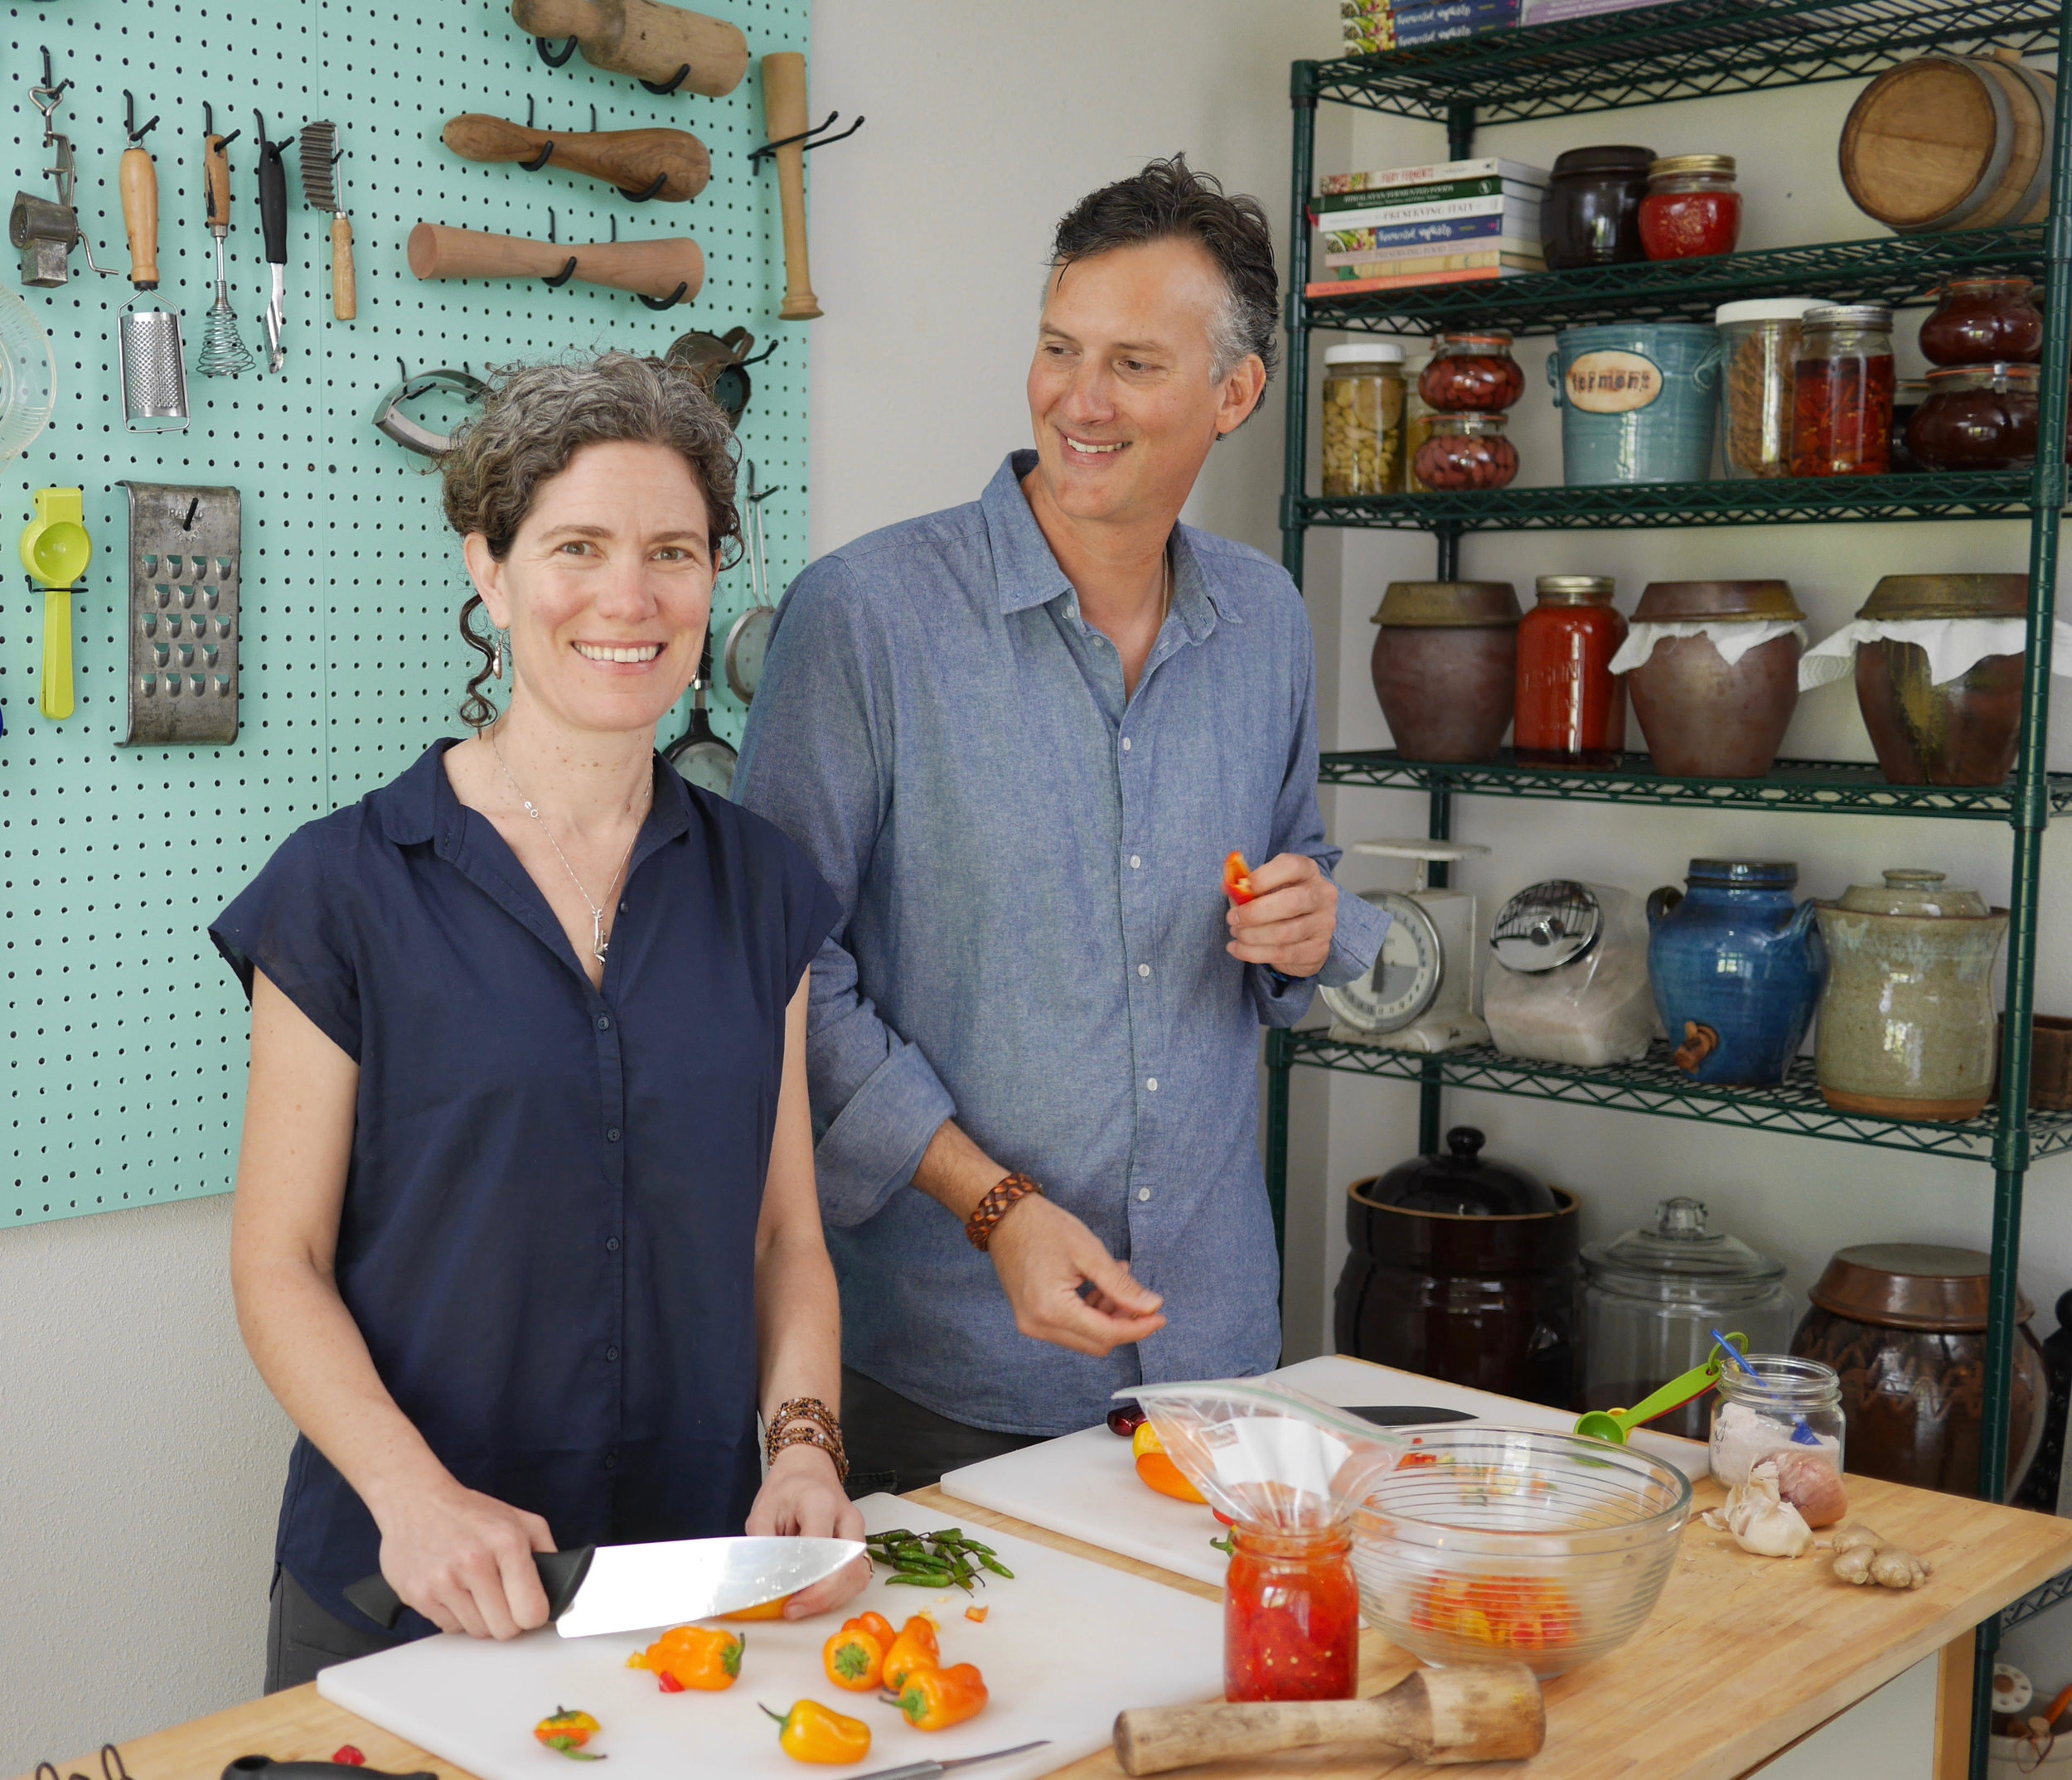 KIRSTEN + Christopher SHOCKEYKirsten and Christopher Shockey got their start in fermenting foods with their organic food company, where they created over forty varieties of saurkrauts and kimchis. When they realized their passion was for the process, they chose to focus on teaching the art of fermenting vegetables. They teach classes nationally and on their 40-acre hillside homestead in the Applegate Valley of Southern Oregon, where they have cultivated a handmade life for the last 19 years. They are co-authors of two books on fermentation, best-selling Fermented Vegetablesand the new Fiery Ferments Learn more at ferment.works. -